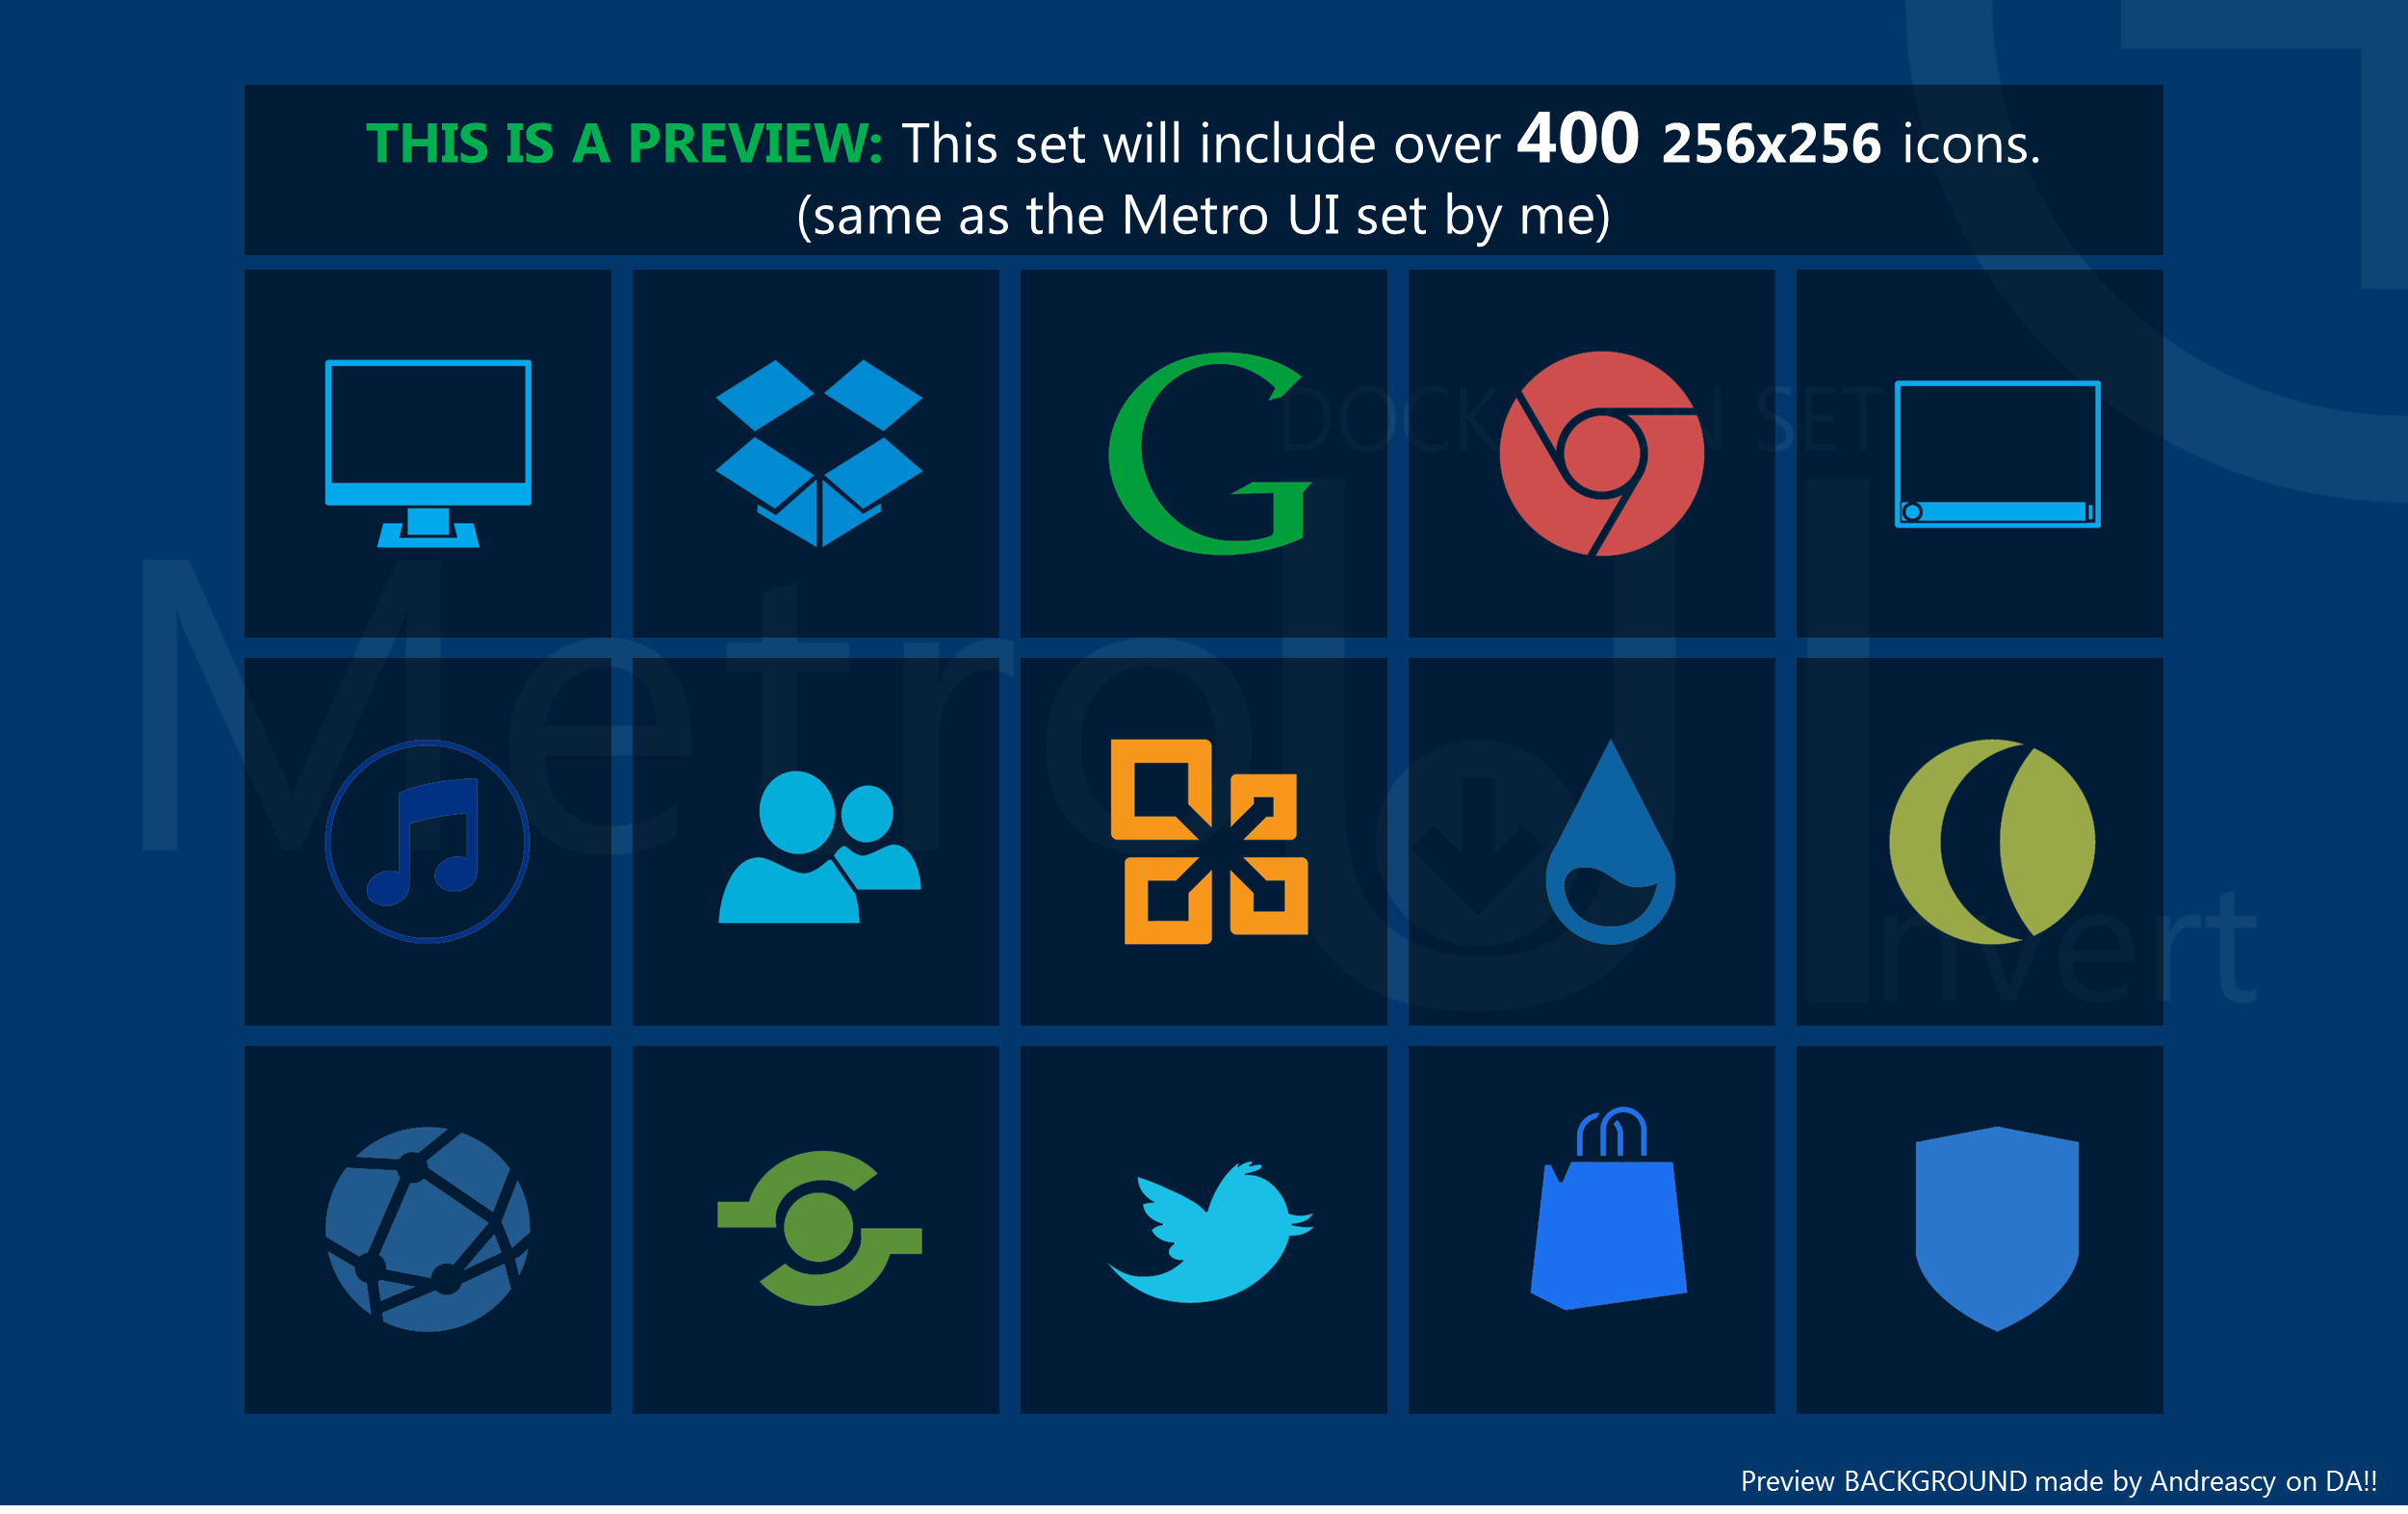 PREVIEW - Metro Uinvert Dock Icon Set COMING SOON by dAKirby309